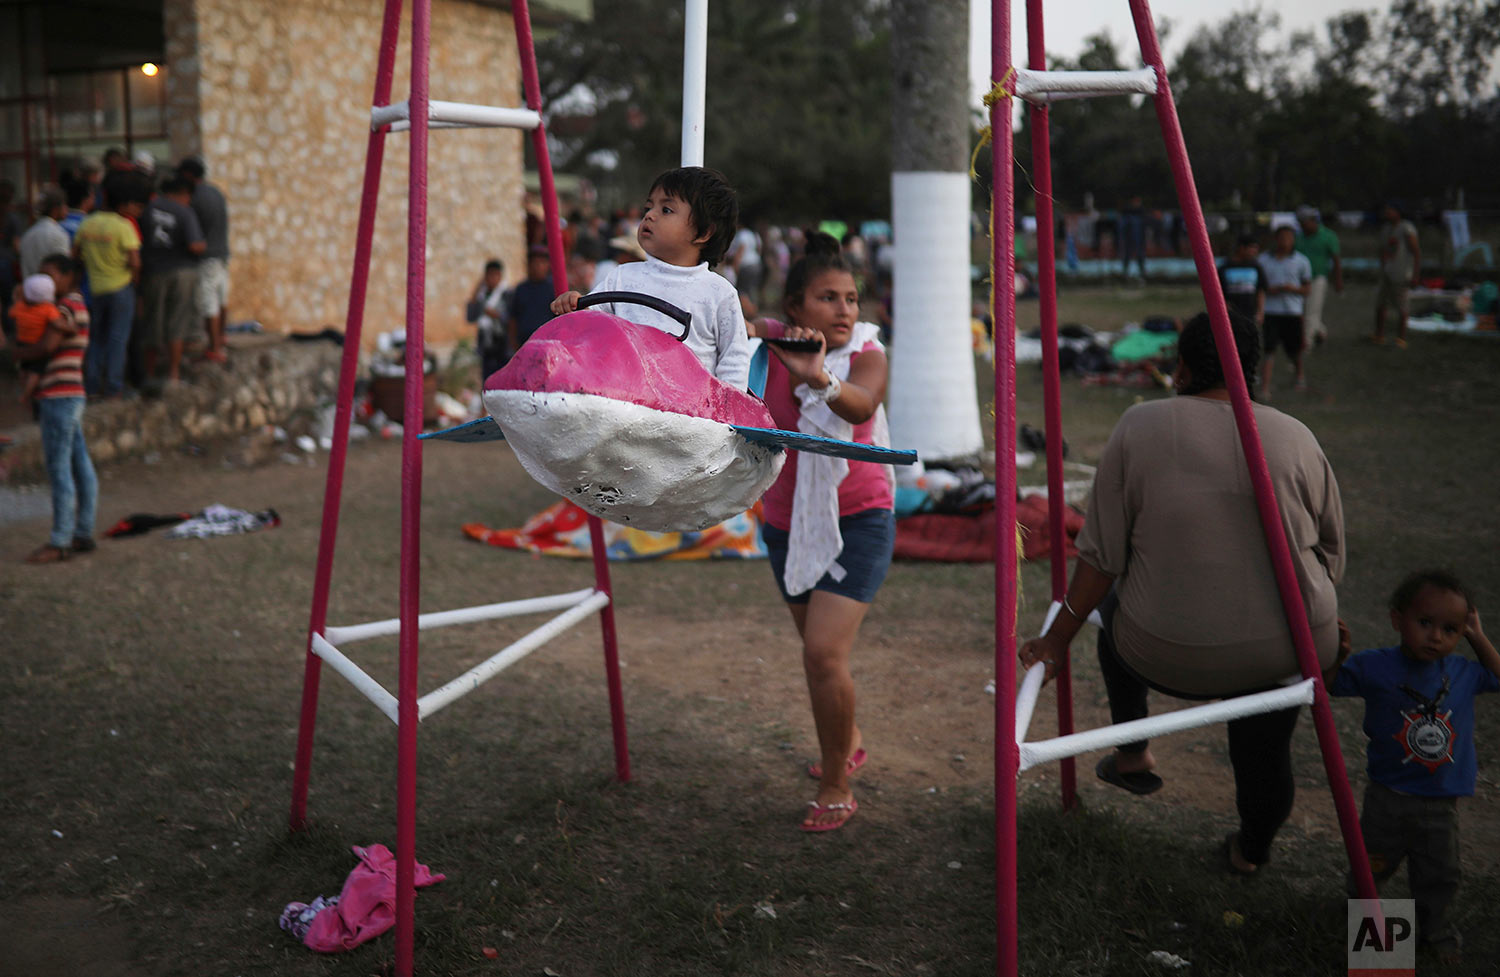 Central American migrant families participating in the Migrant Stations of the Cross caravan play on a swing during the caravan's stop at a sports center in Matias Romero, Oaxaca state, Mexico, late Monday, April 2, 2018. (AP Photo/Felix Marquez)